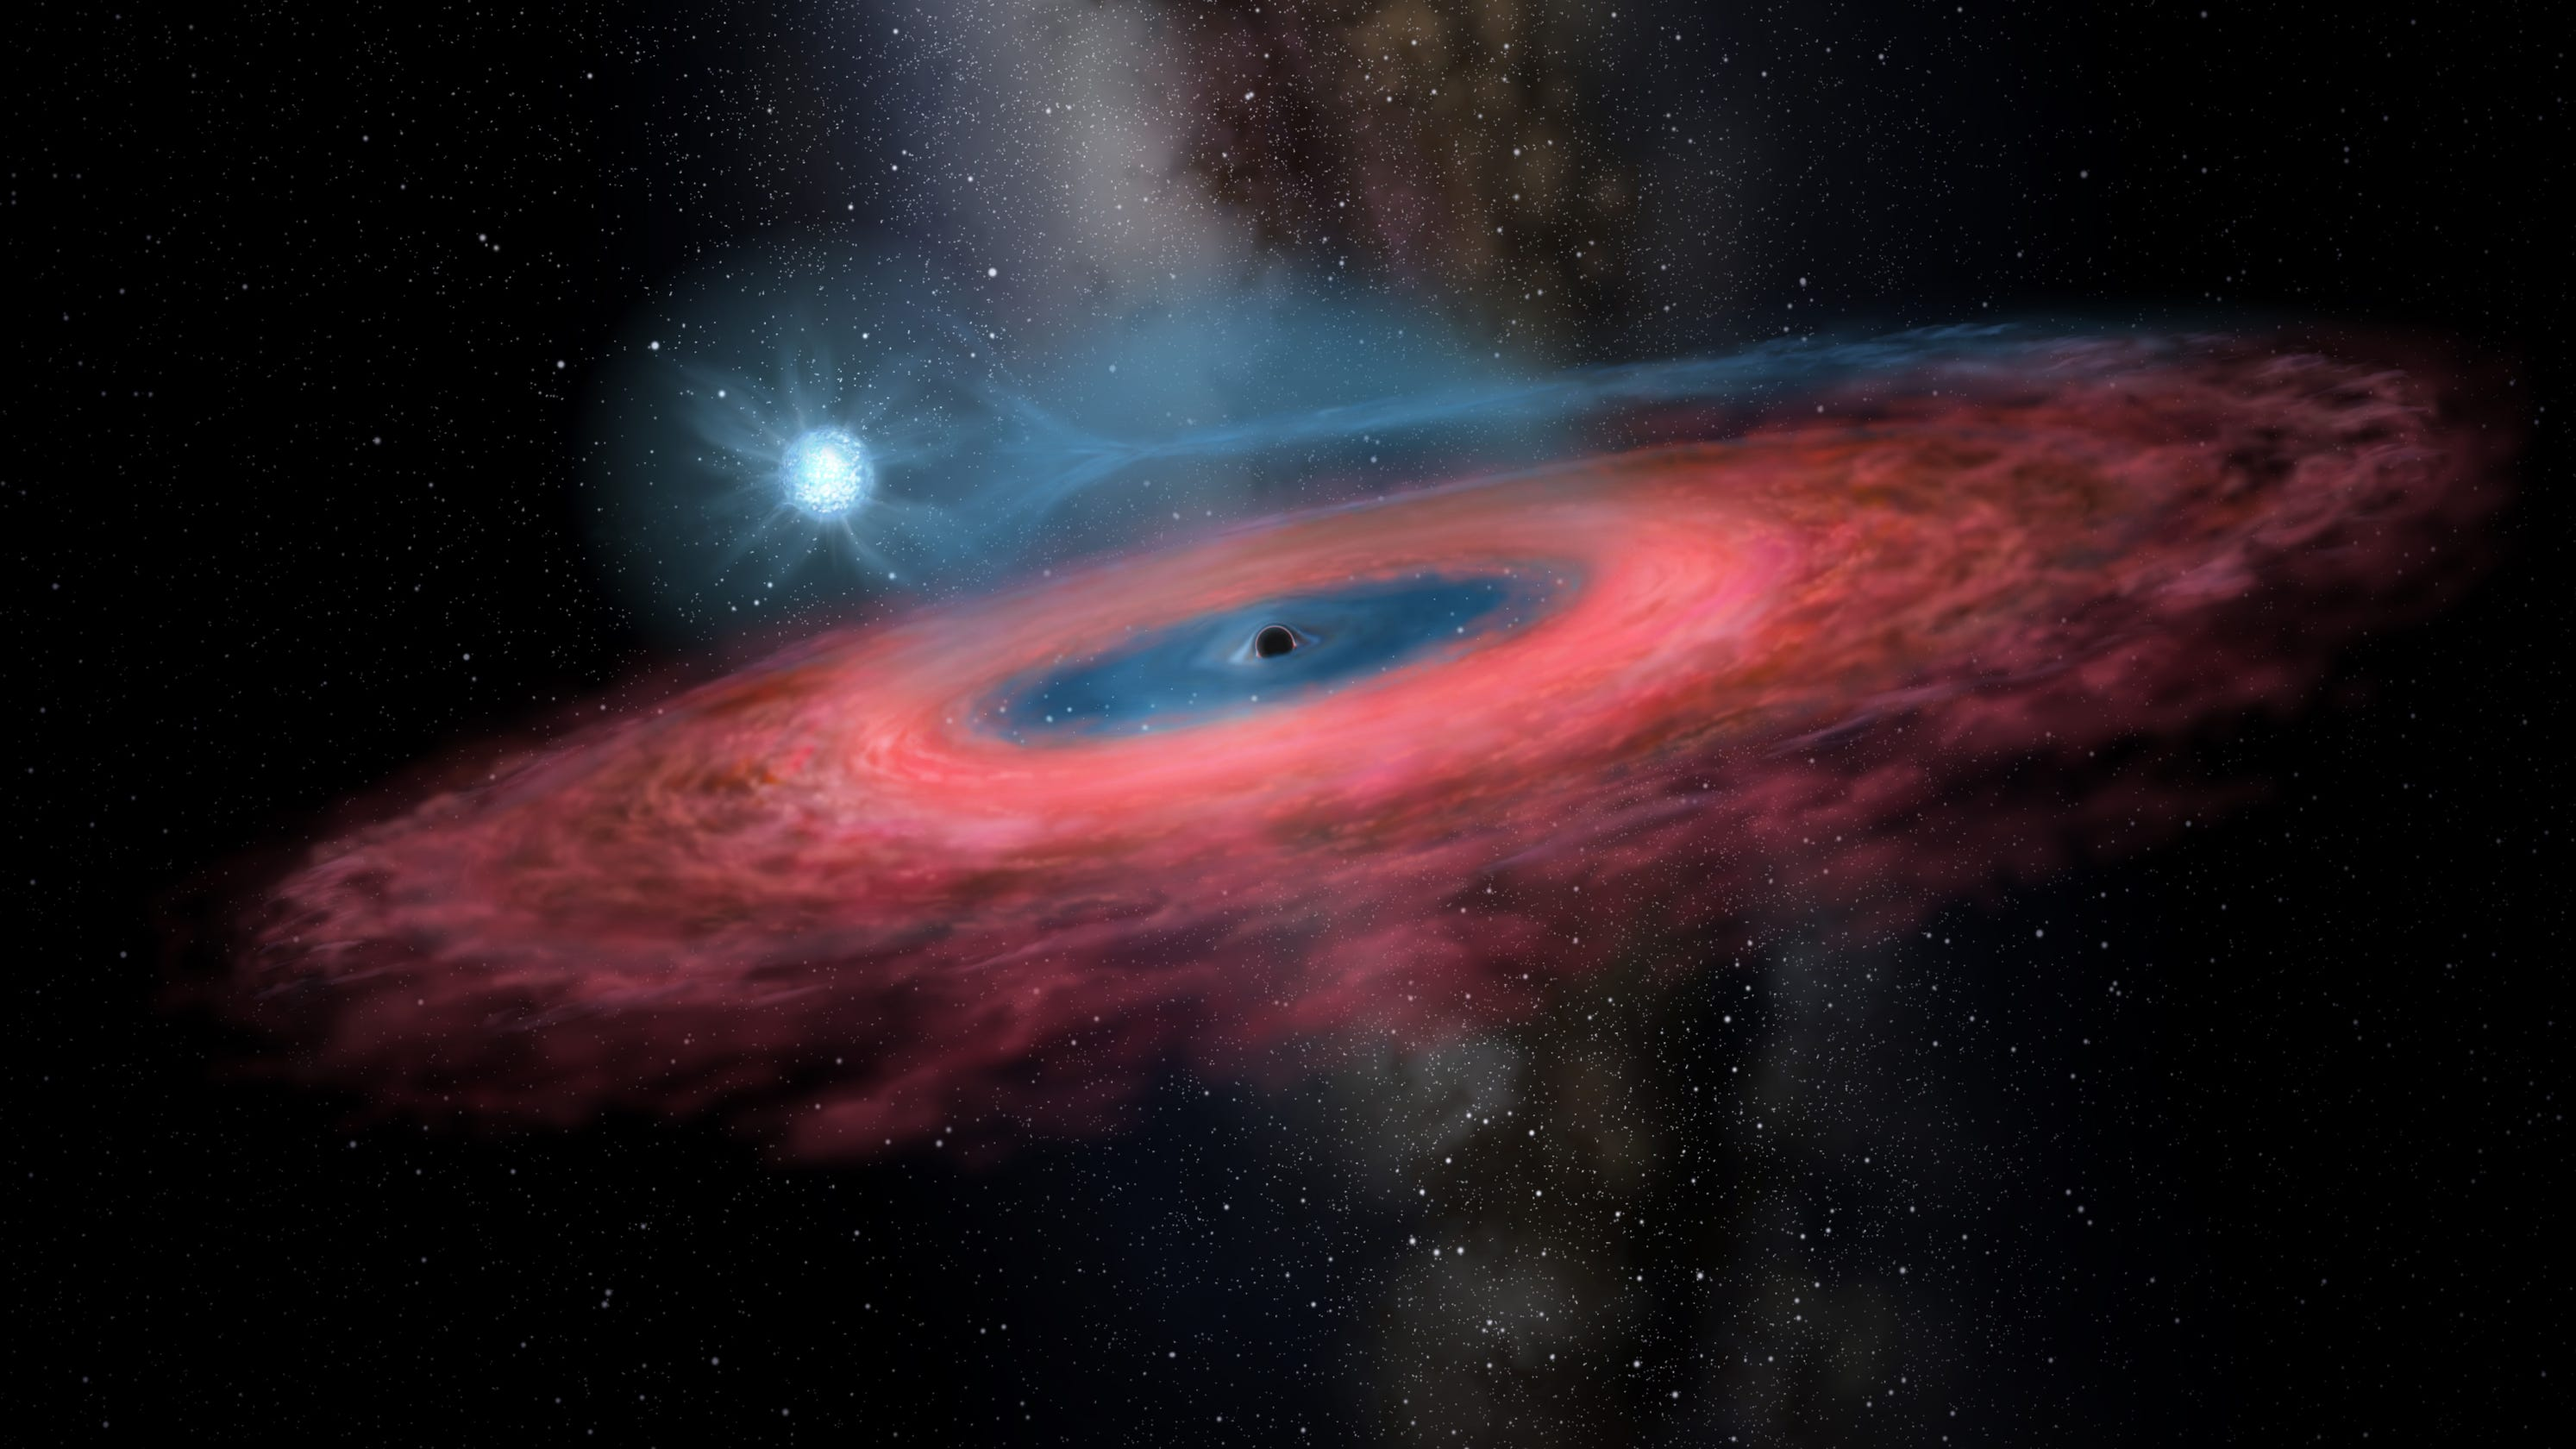 'Monster' black hole found. Scientists didn't think stellar black holes could be so big